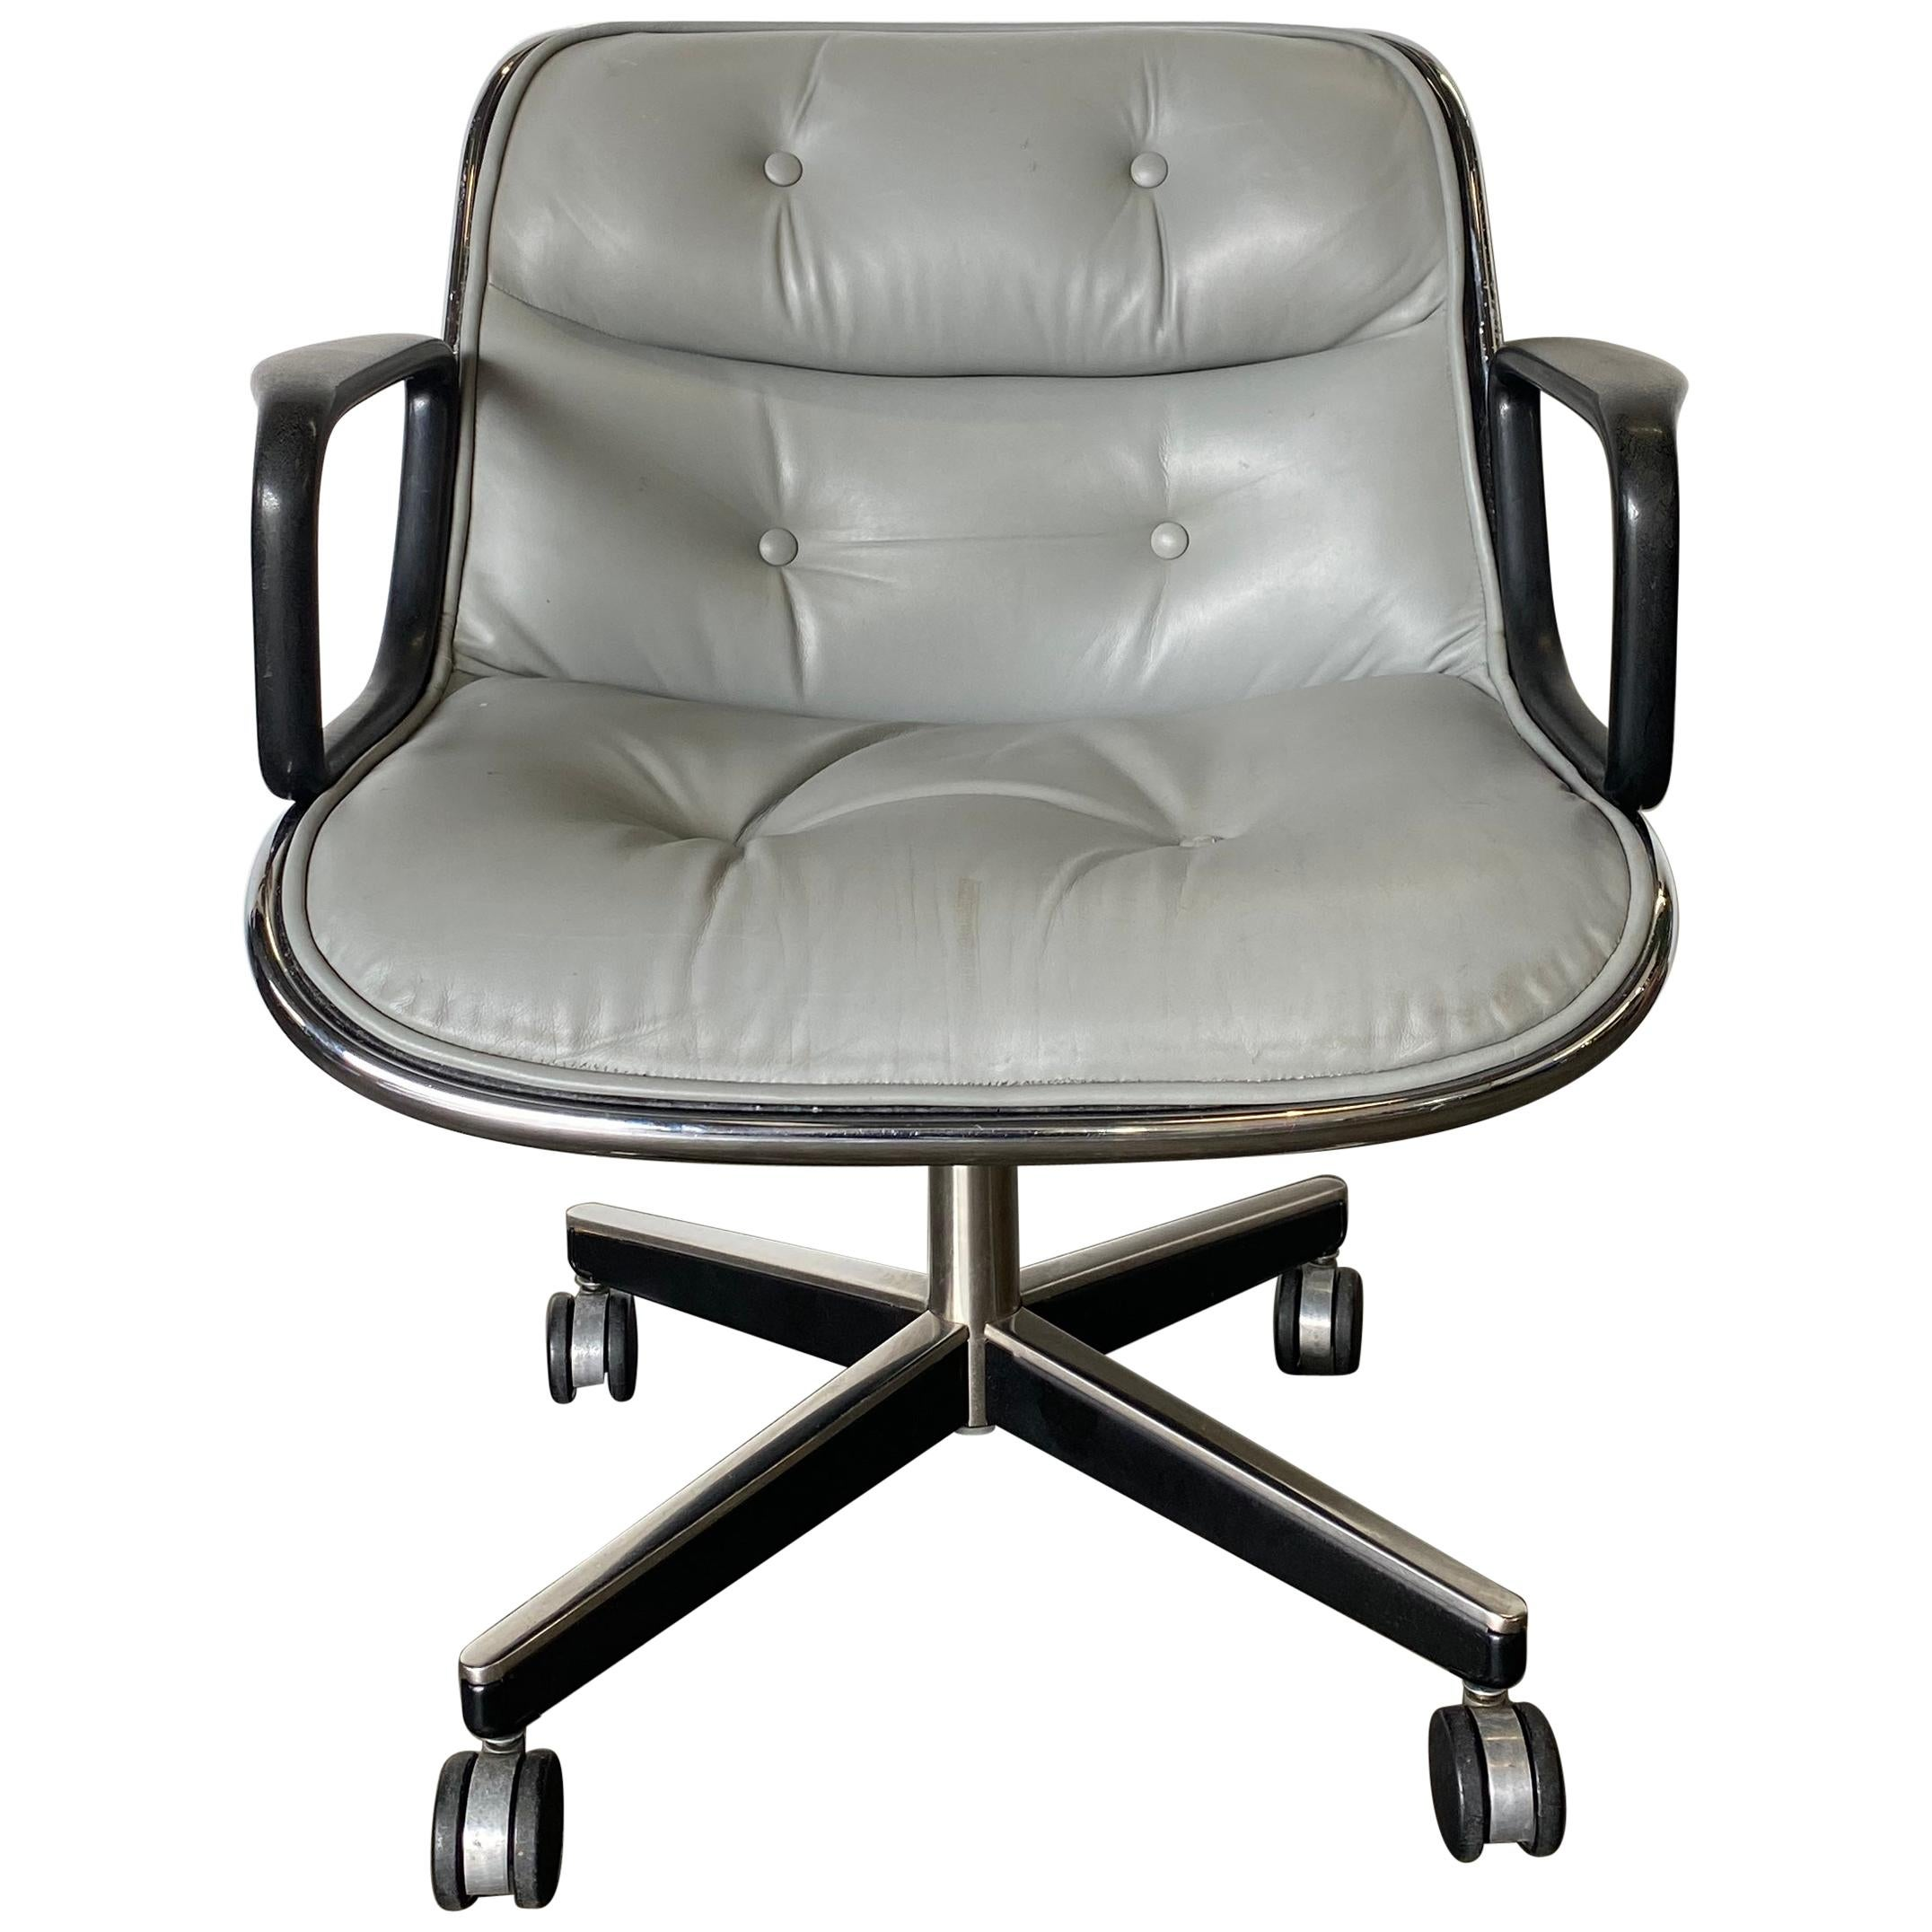 Charles Pollock Office/Desk Chair by Knoll